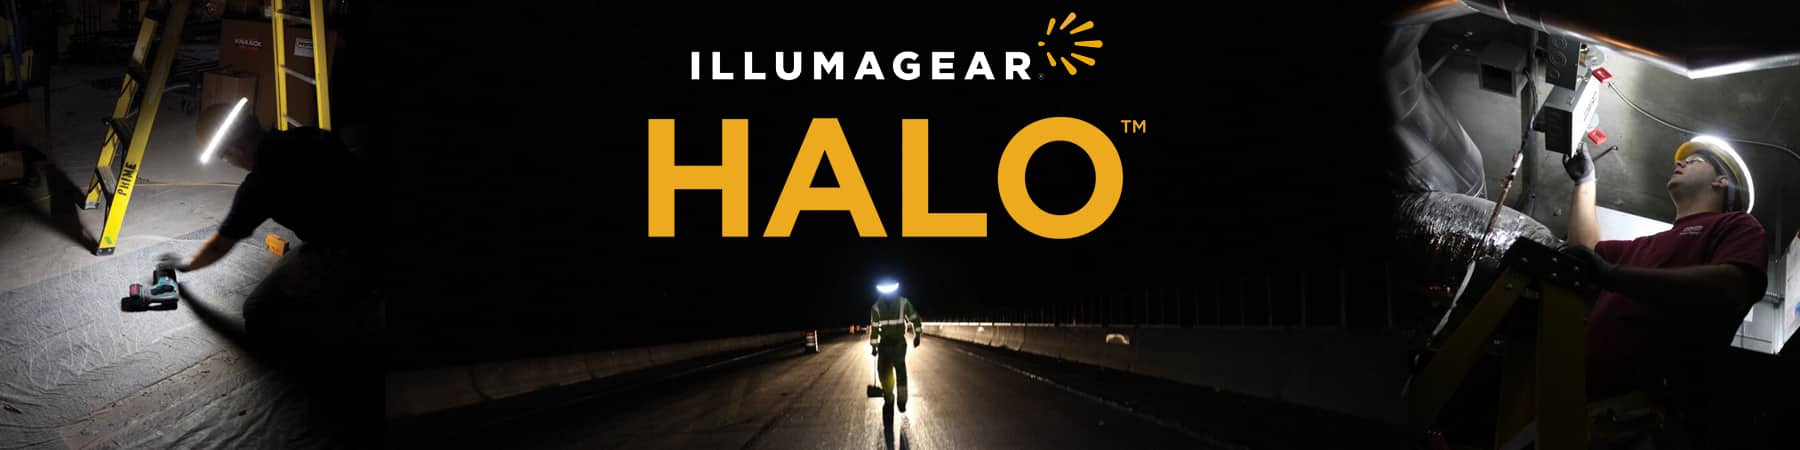 Illumagear Halo Light